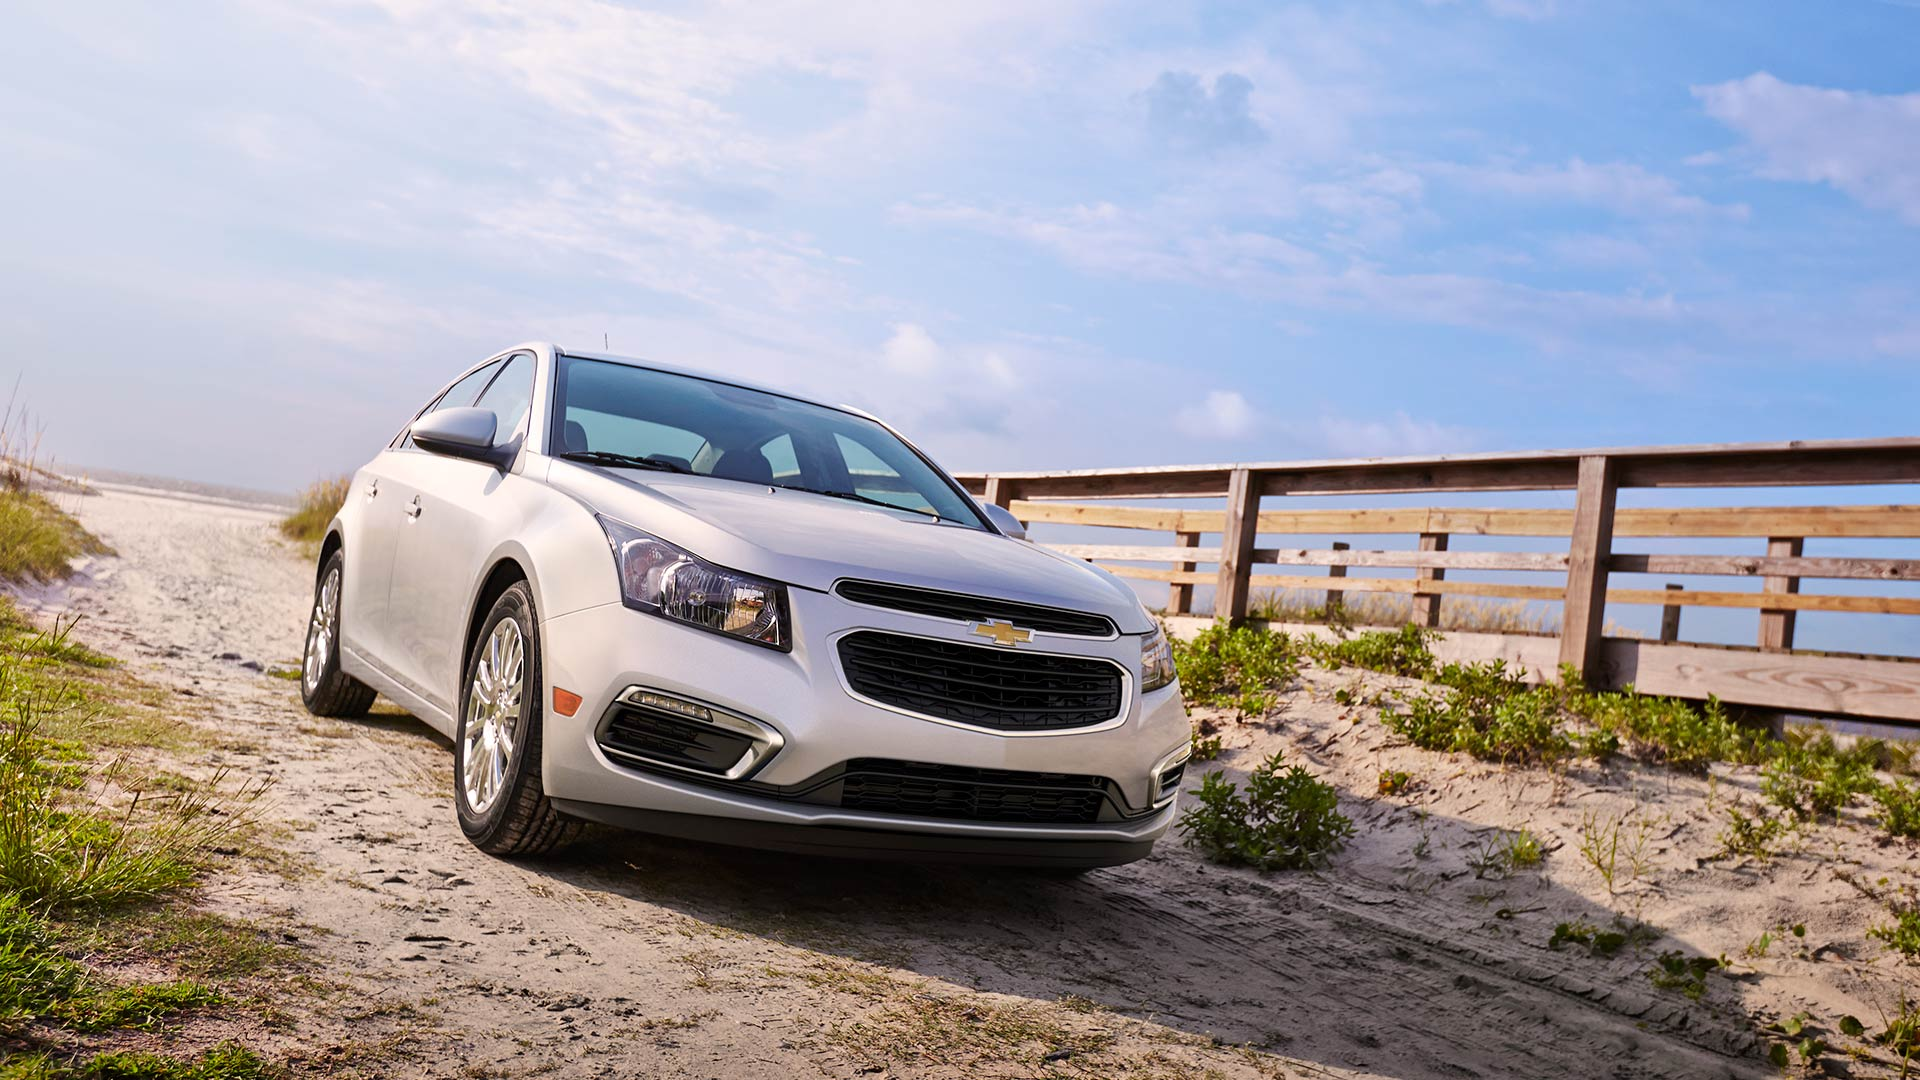 2015 Chevy Cruze Research & Review Page Released | Uncategorized